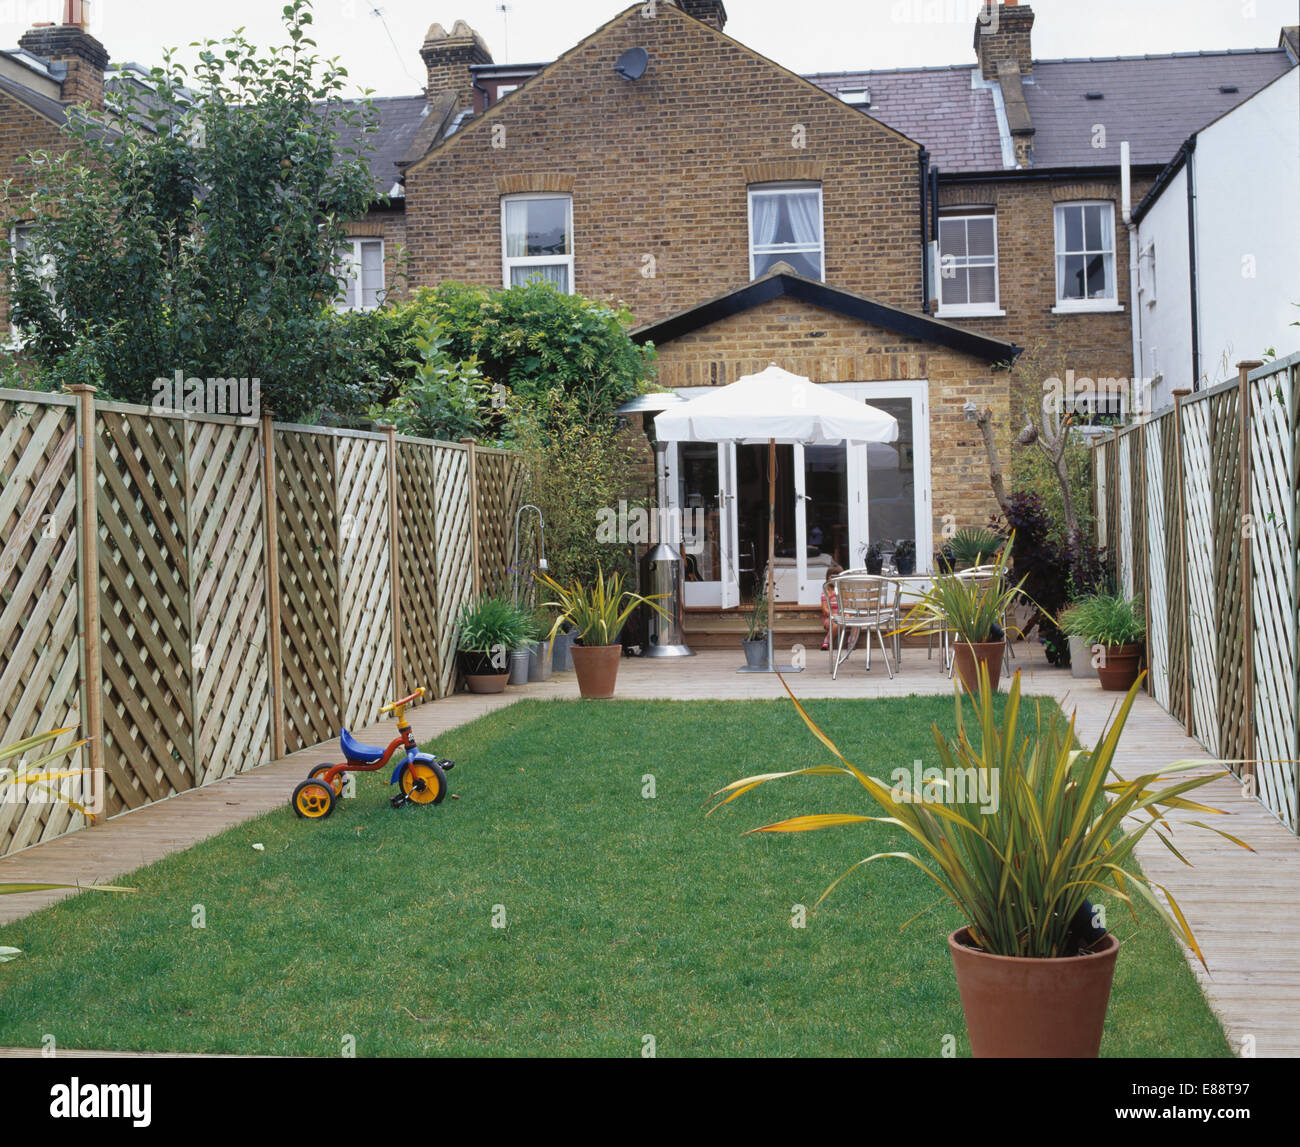 Lawn and trellis fence in back garden of townhouse with small Stock